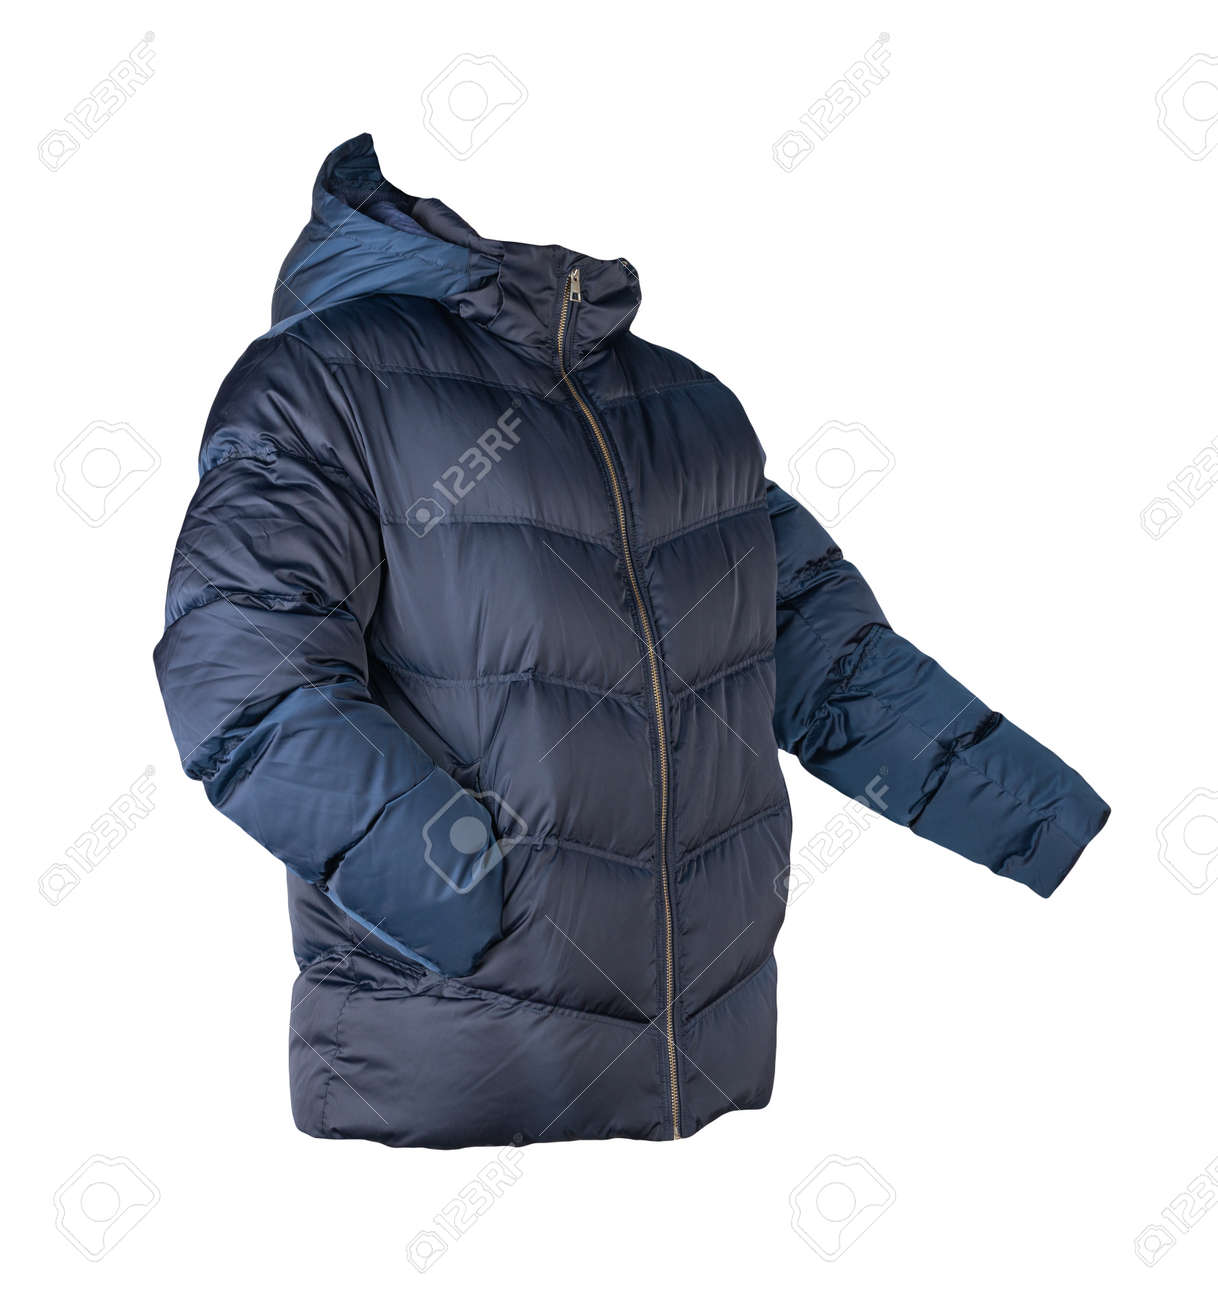 mens dark blue down jacket with hood isolated on white background. fashionable clothes for every day - 172140066